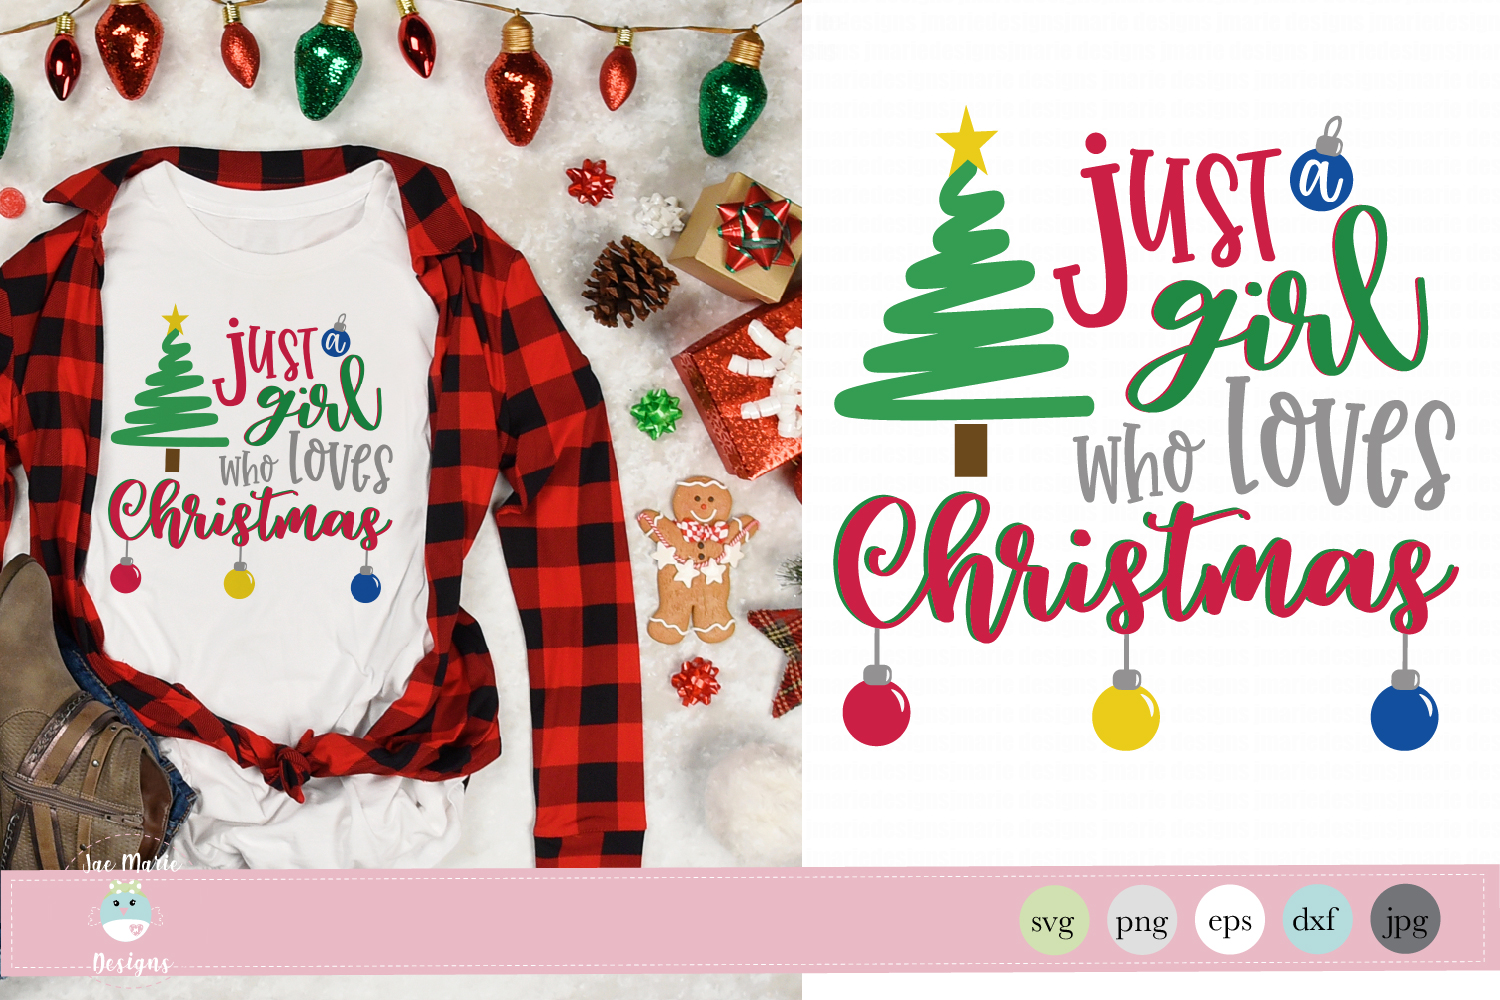 Download Free Just A Girl Who Loves Christmas Graphic By Thejaemarie for Cricut Explore, Silhouette and other cutting machines.